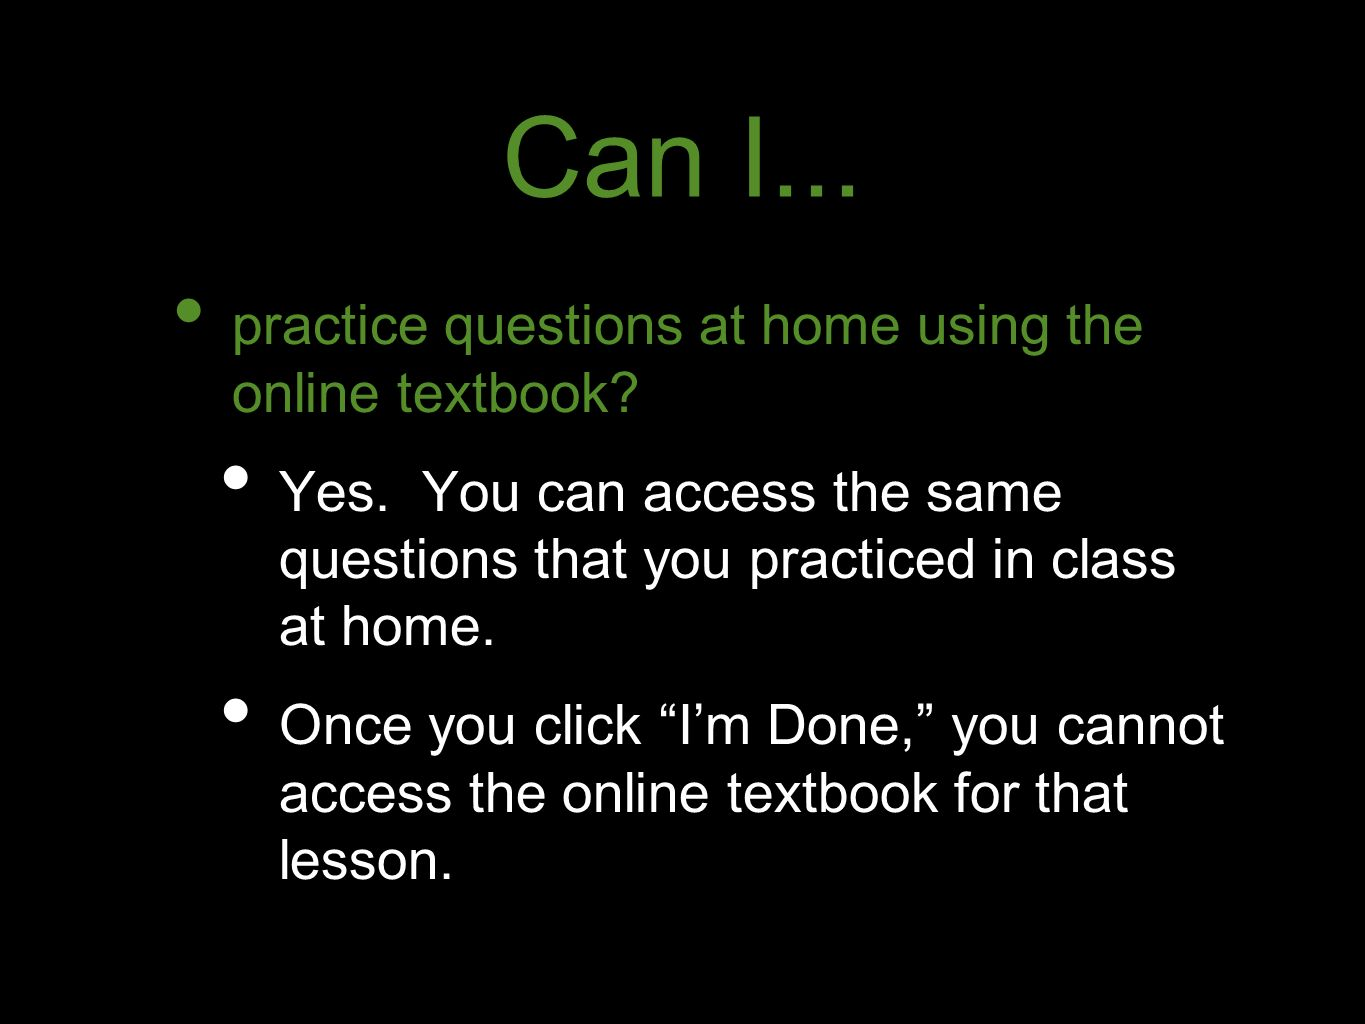 Can I... practice questions at home using the online textbook